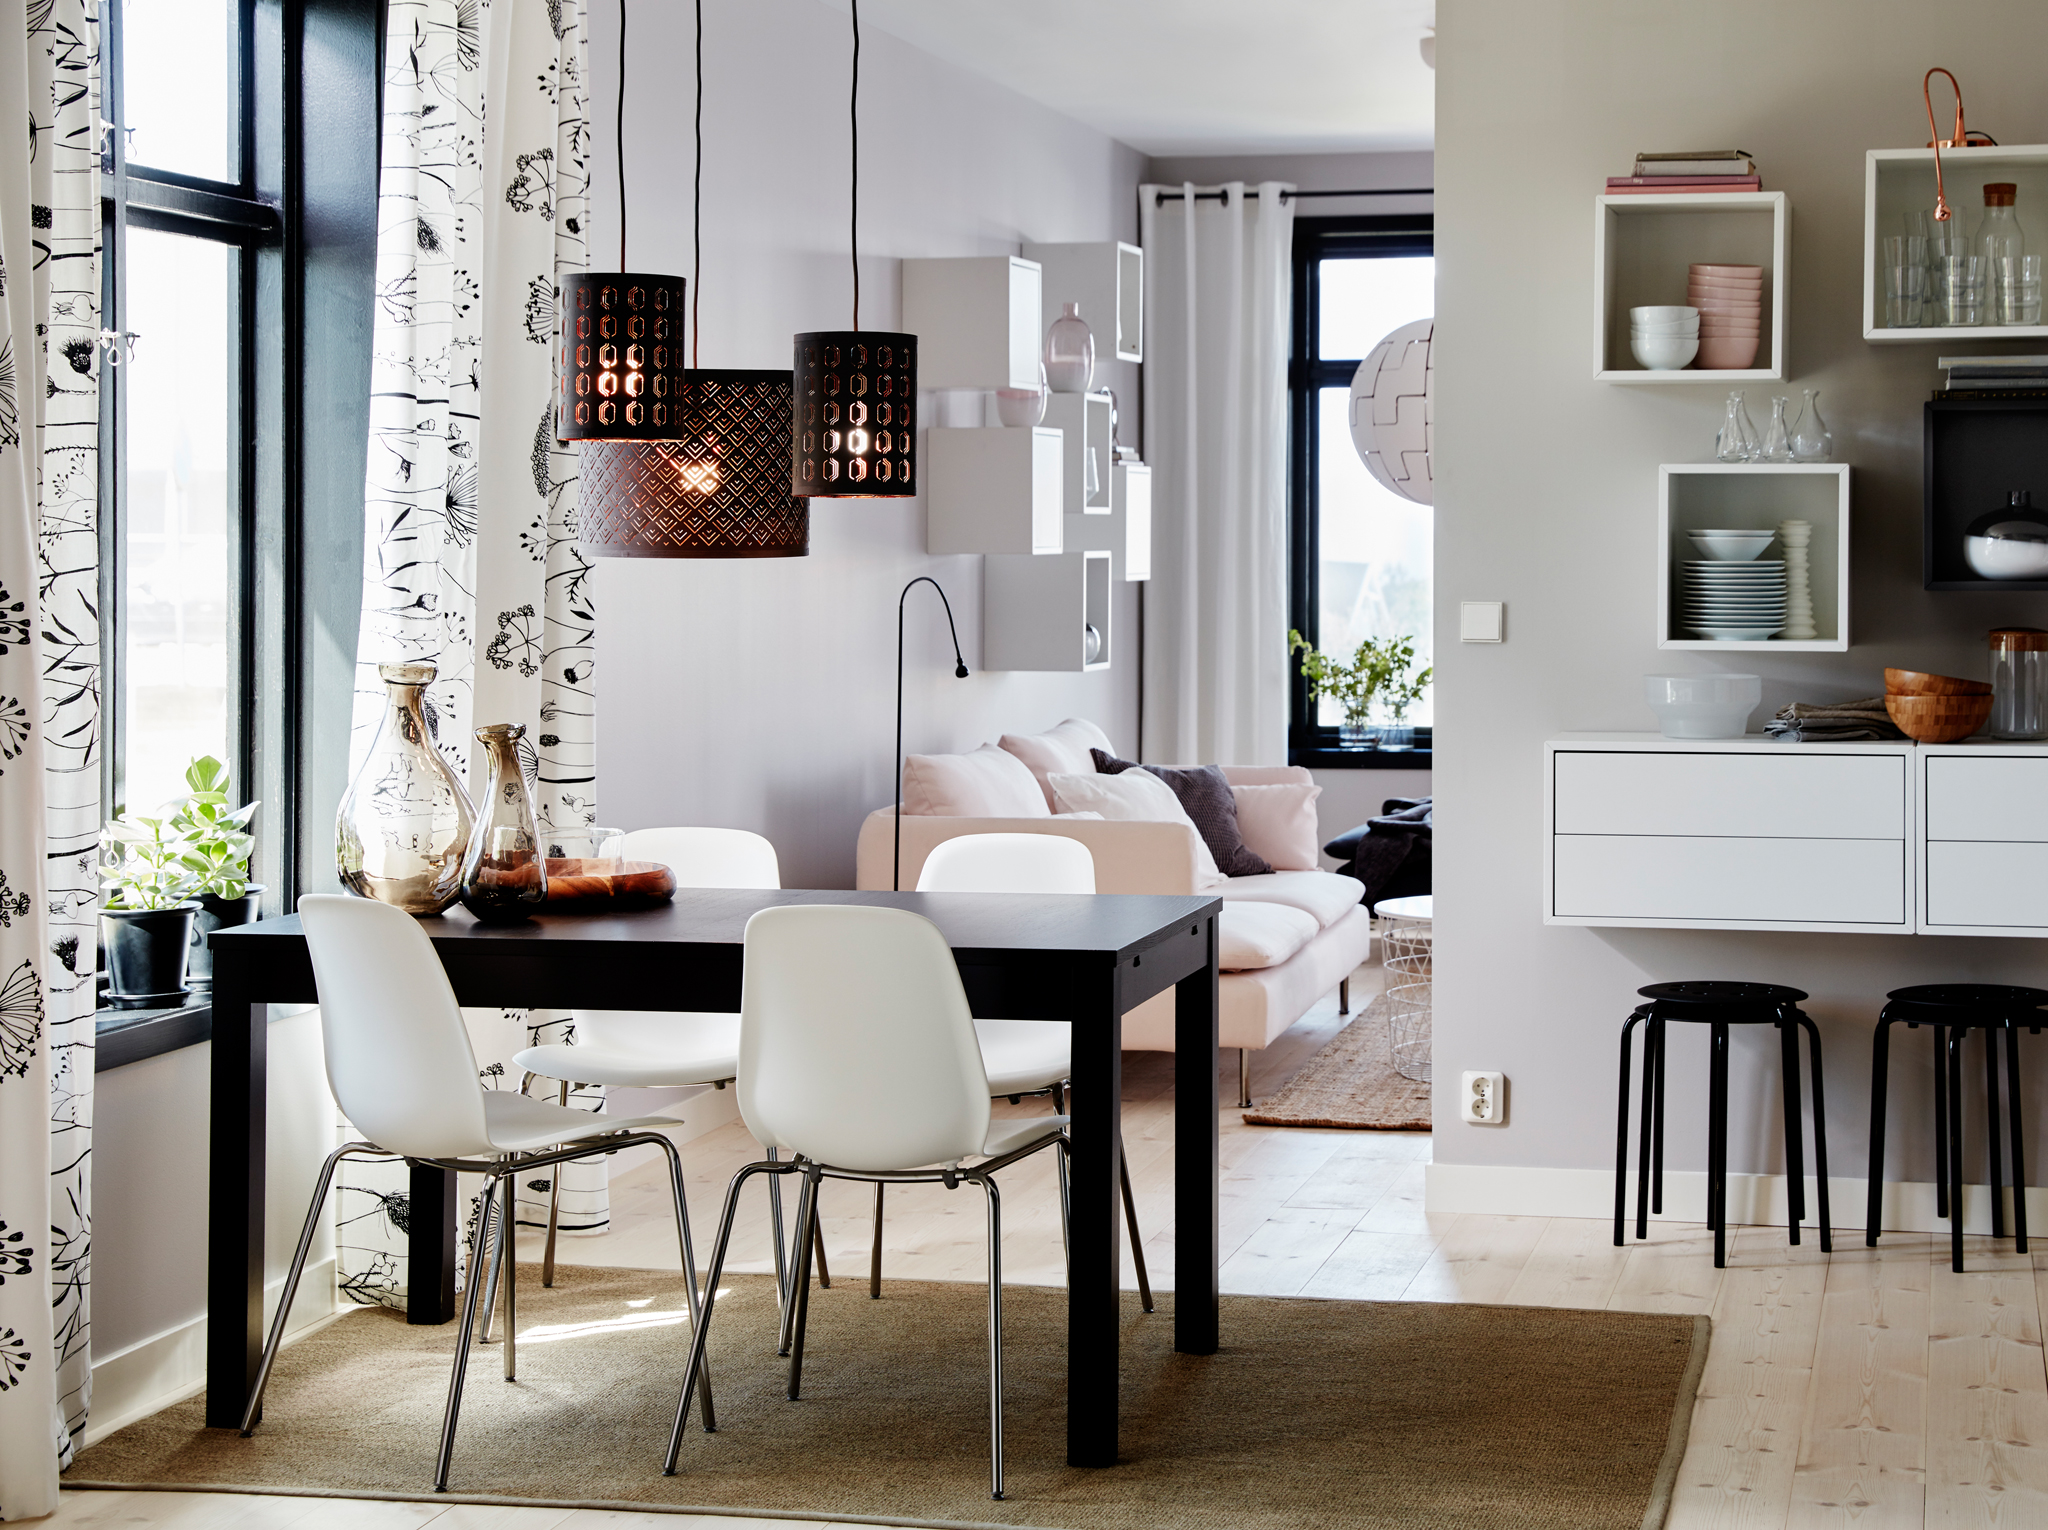 ikea dining room tables and chairs suitable with ikea dining room cabinets suitable with ikea dining room chairs uk